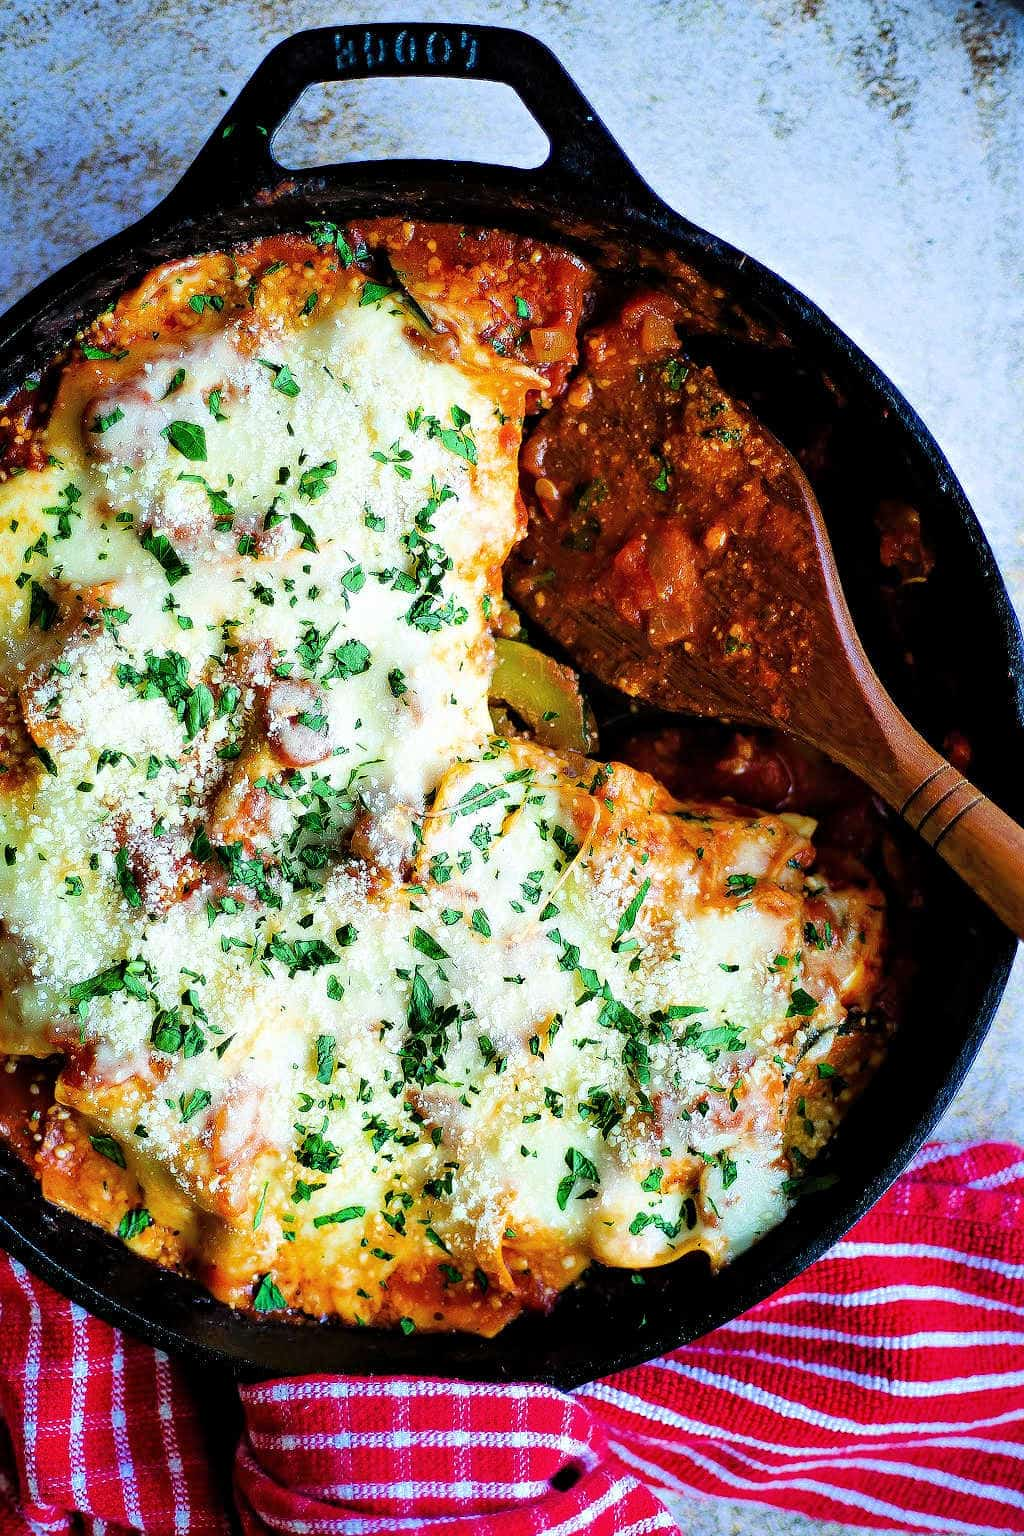 Skillet Lasagna with Squash and Mushrooms in a cast iron skillet with a wooden spoon